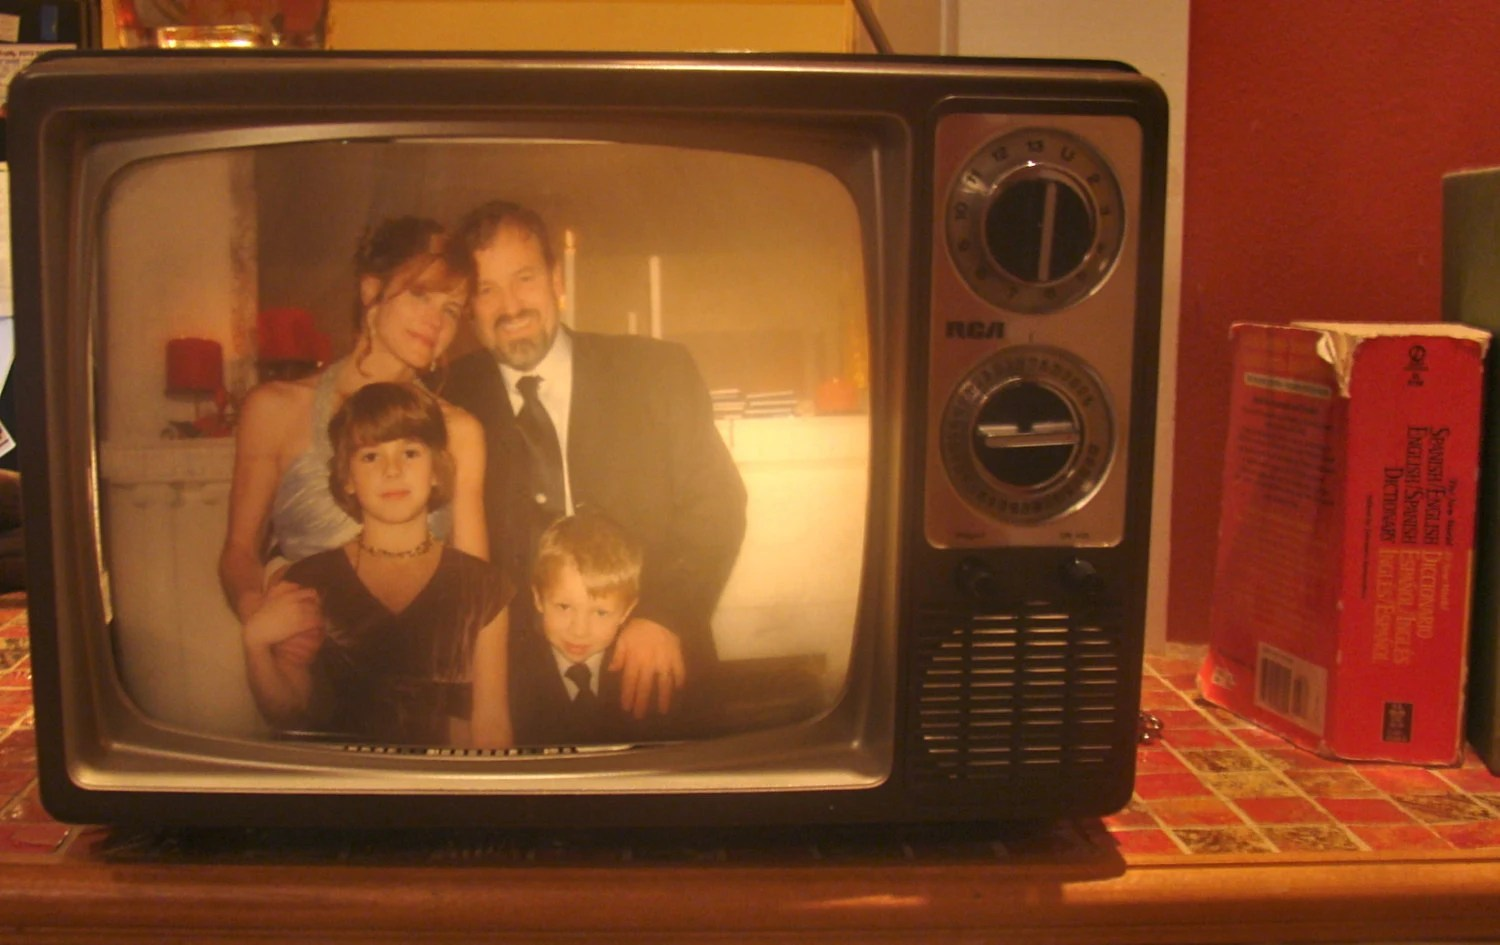 Recycled Vintage TV Lamp 1980s RCA Television by